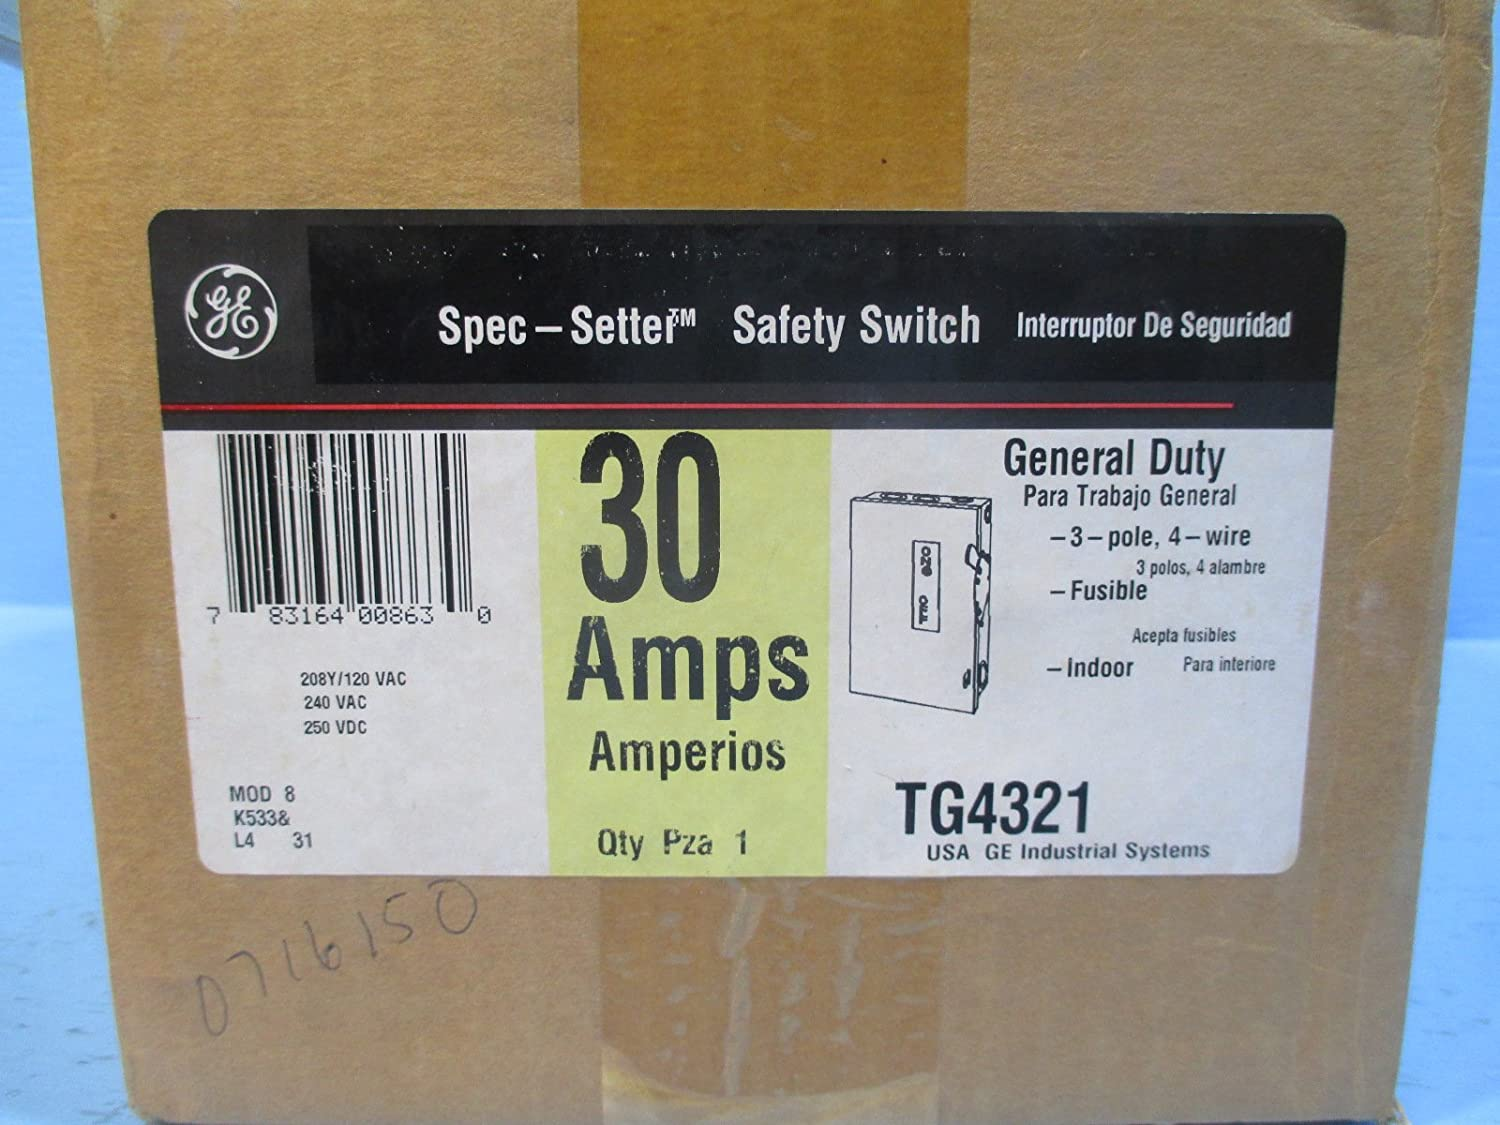 GE TG4321 4 Wire 3 Pole Fusible Type TG General-Duty Safety Switch 240 Volt 30 Amp NEMA 1 Spec-Setter�